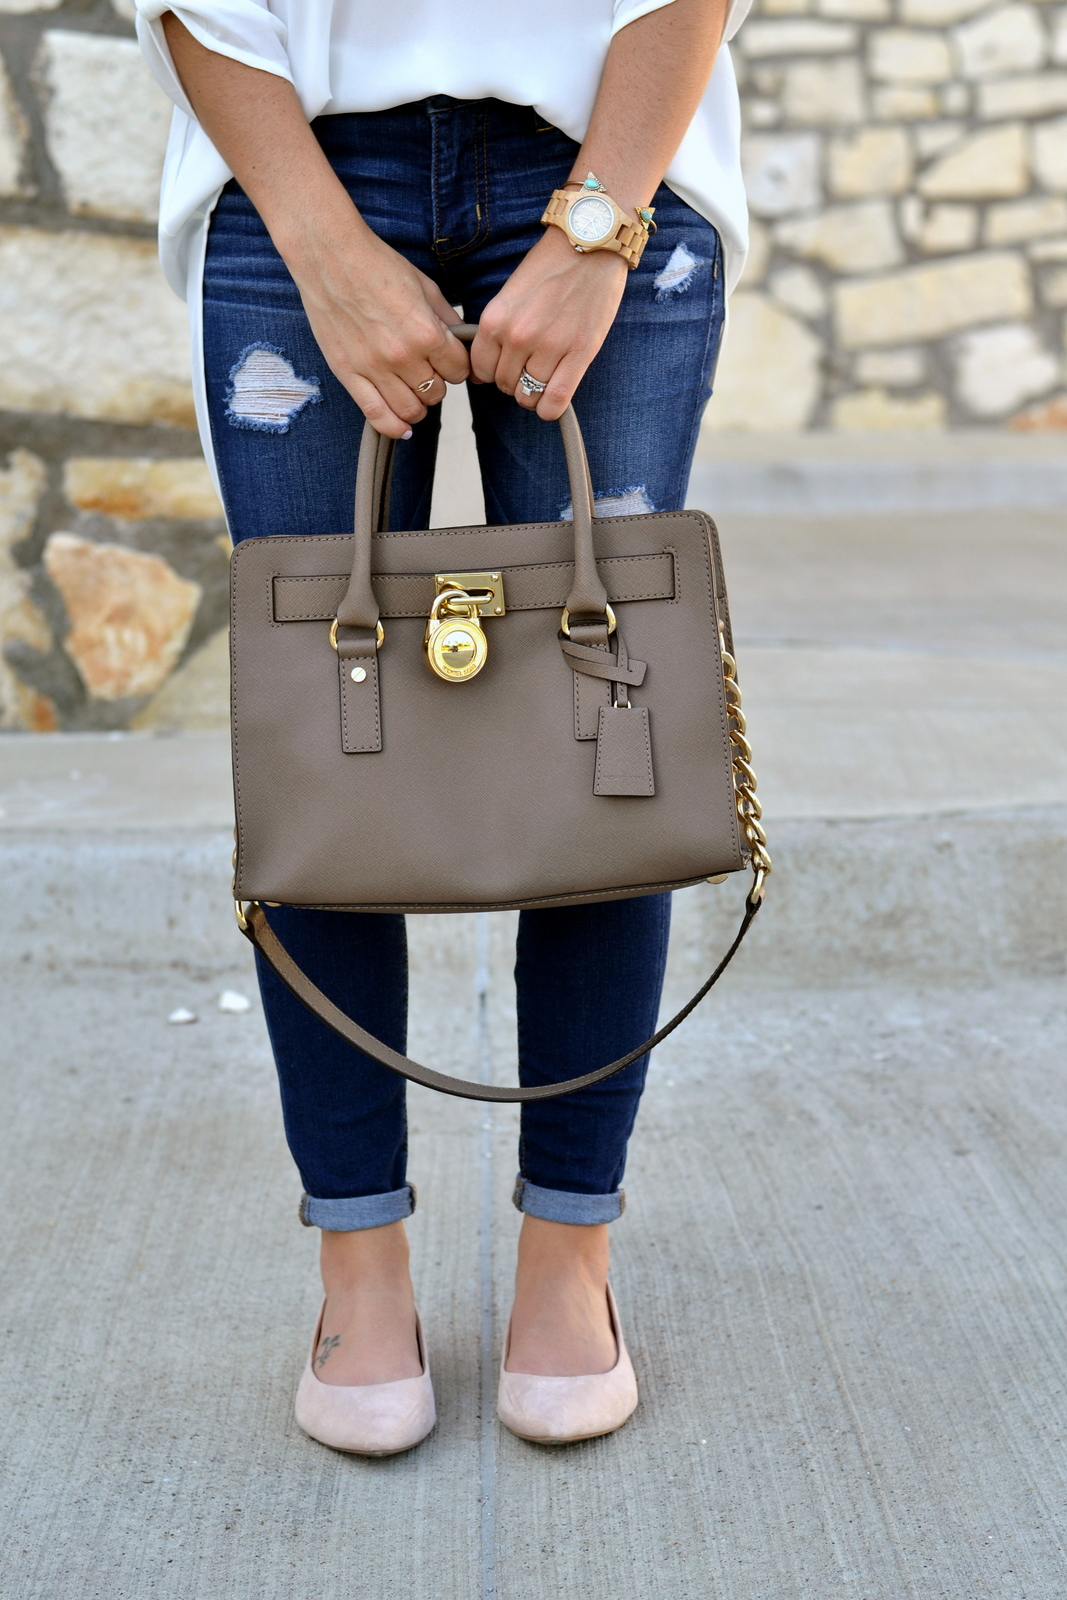 Michael Kors Bag and Nude flats